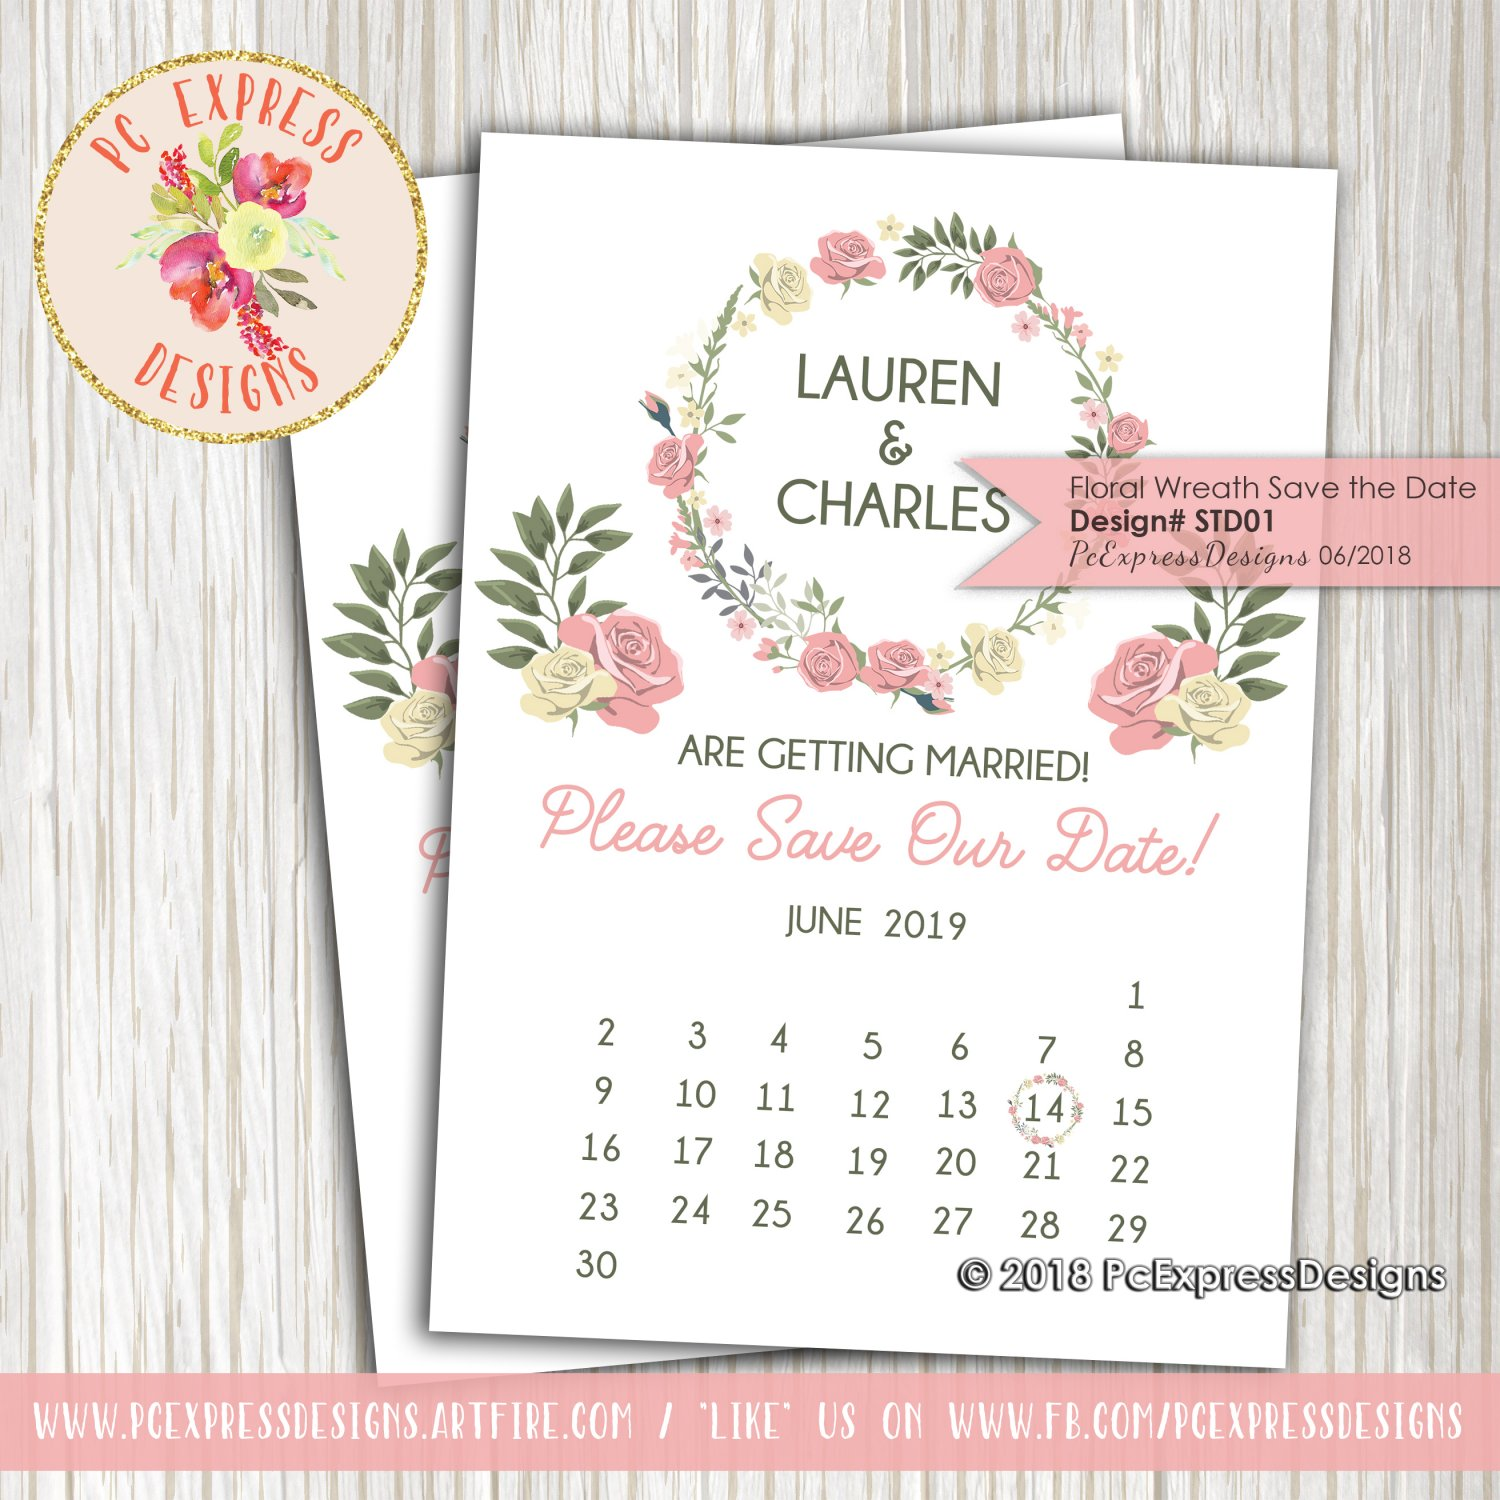 Floral Wreath Save the Date - STD01